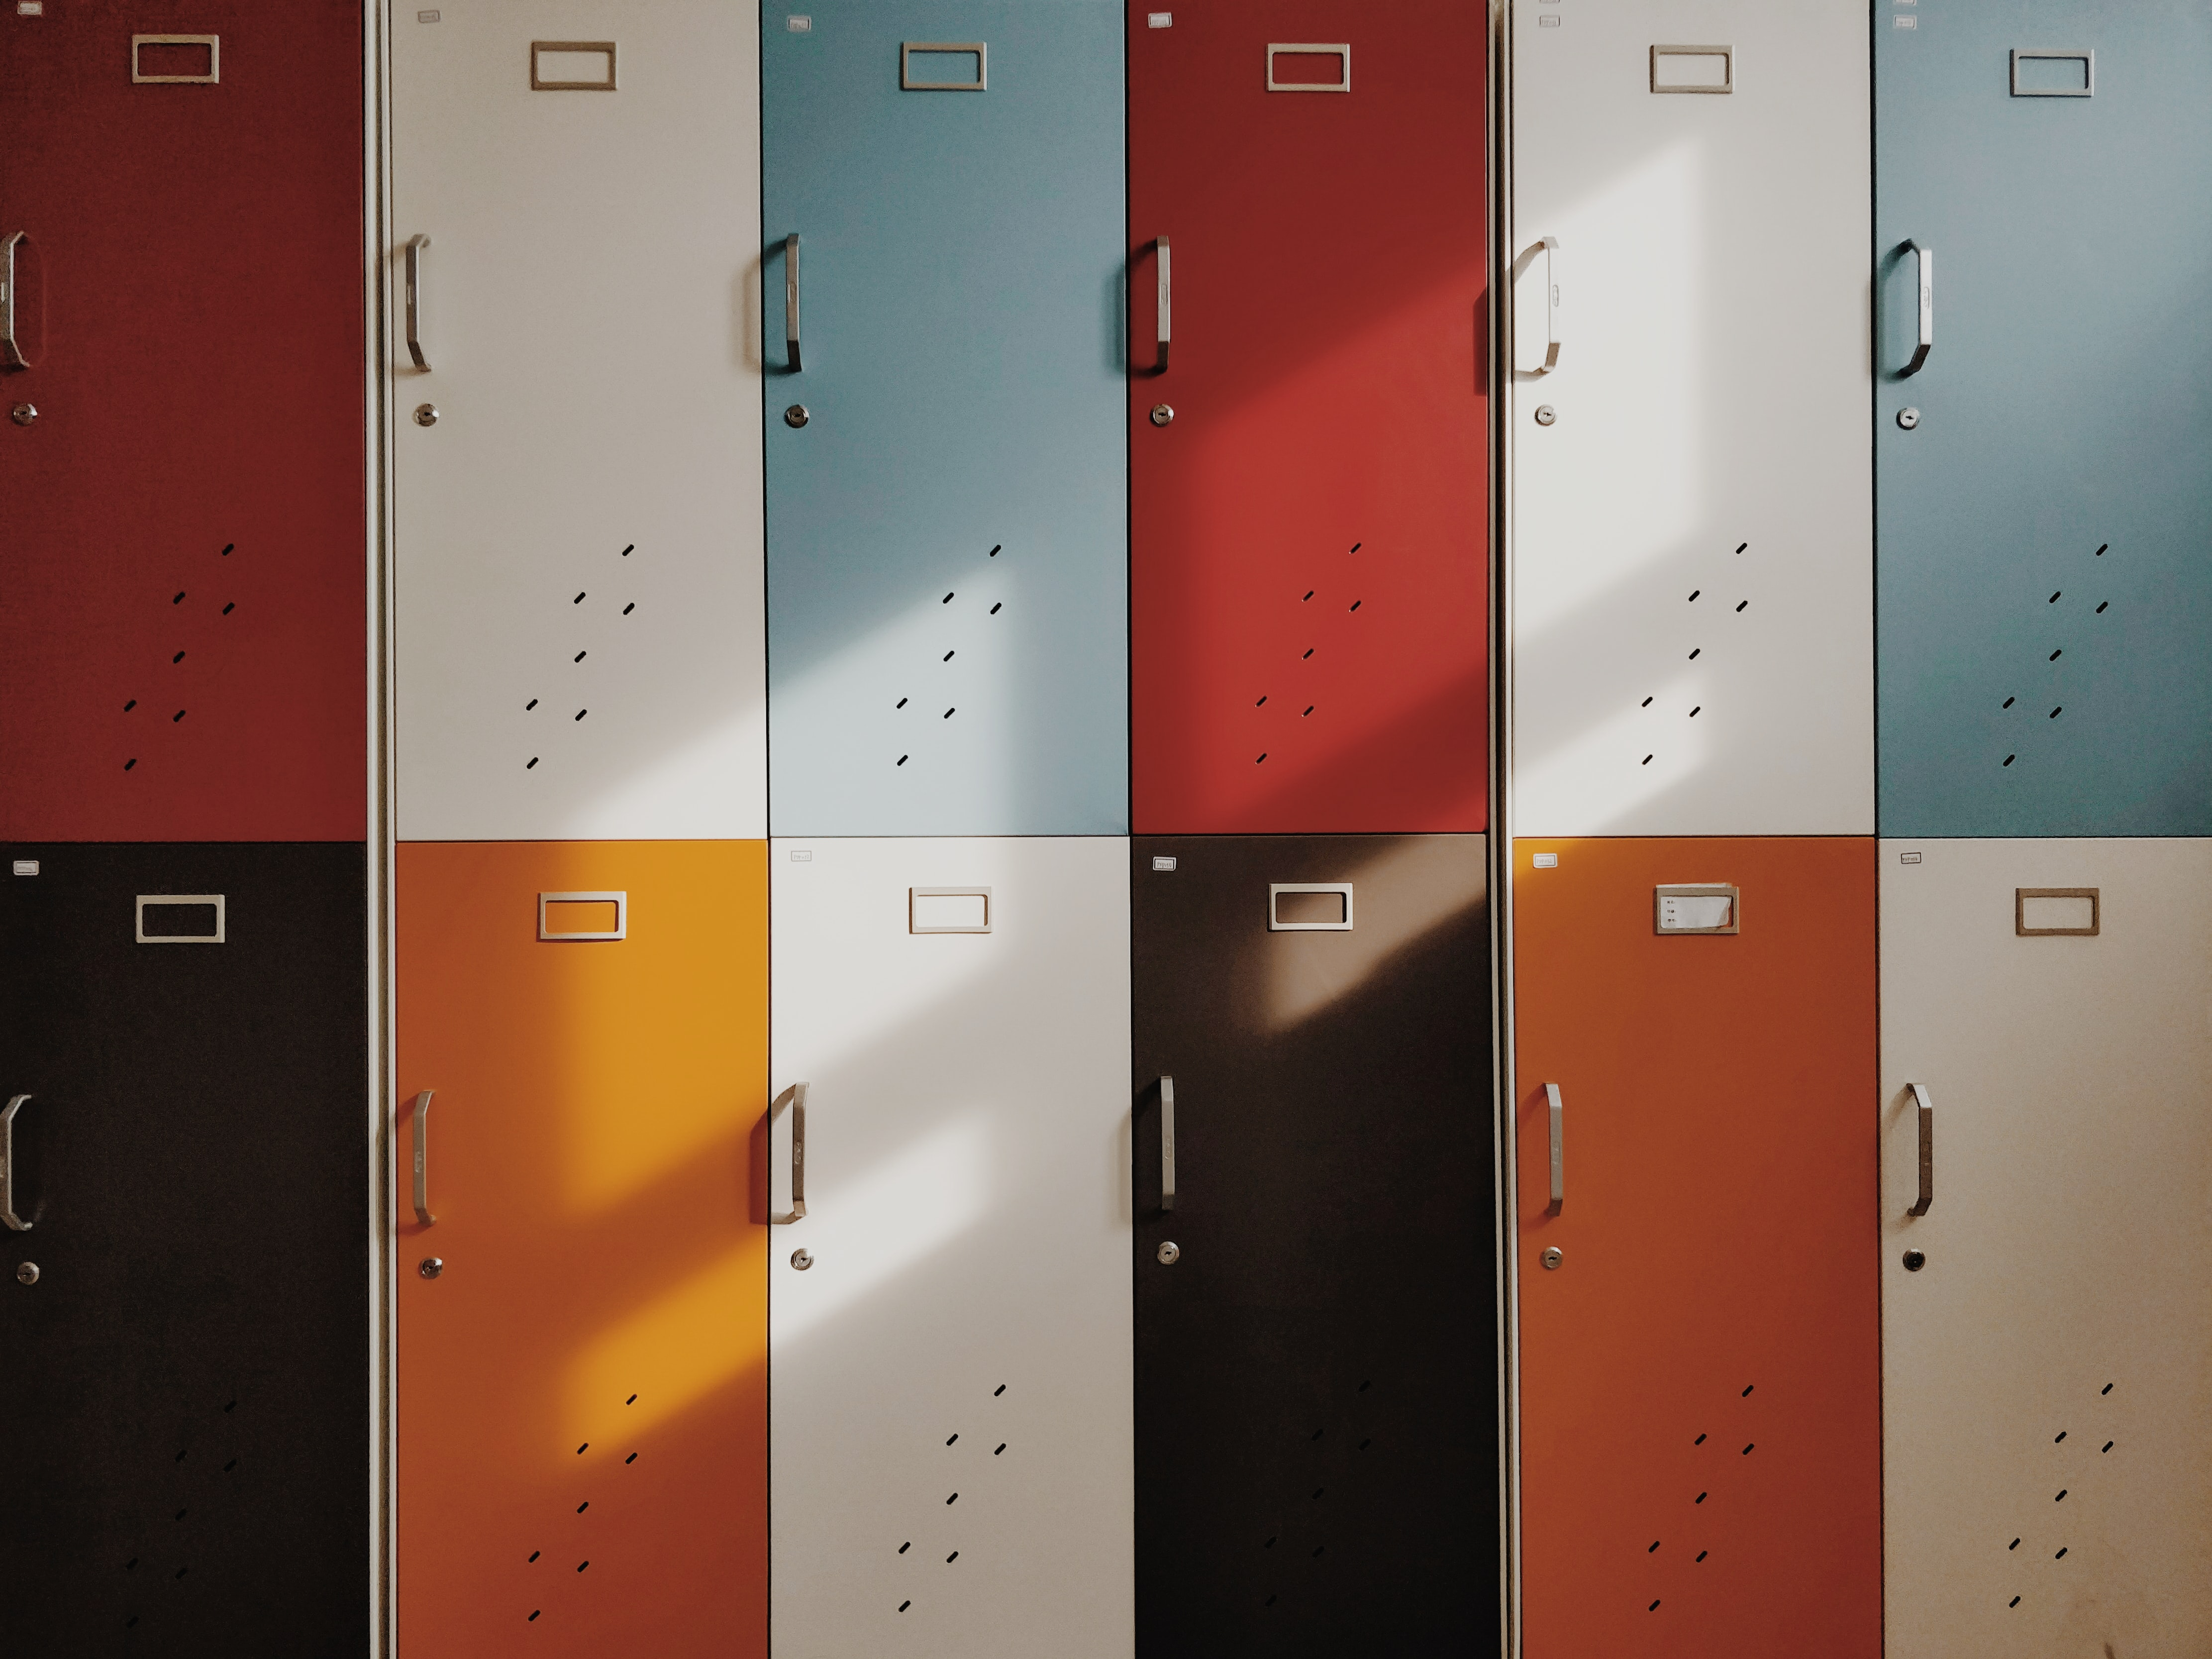 Six doors of varying colors stacked on top of each other.